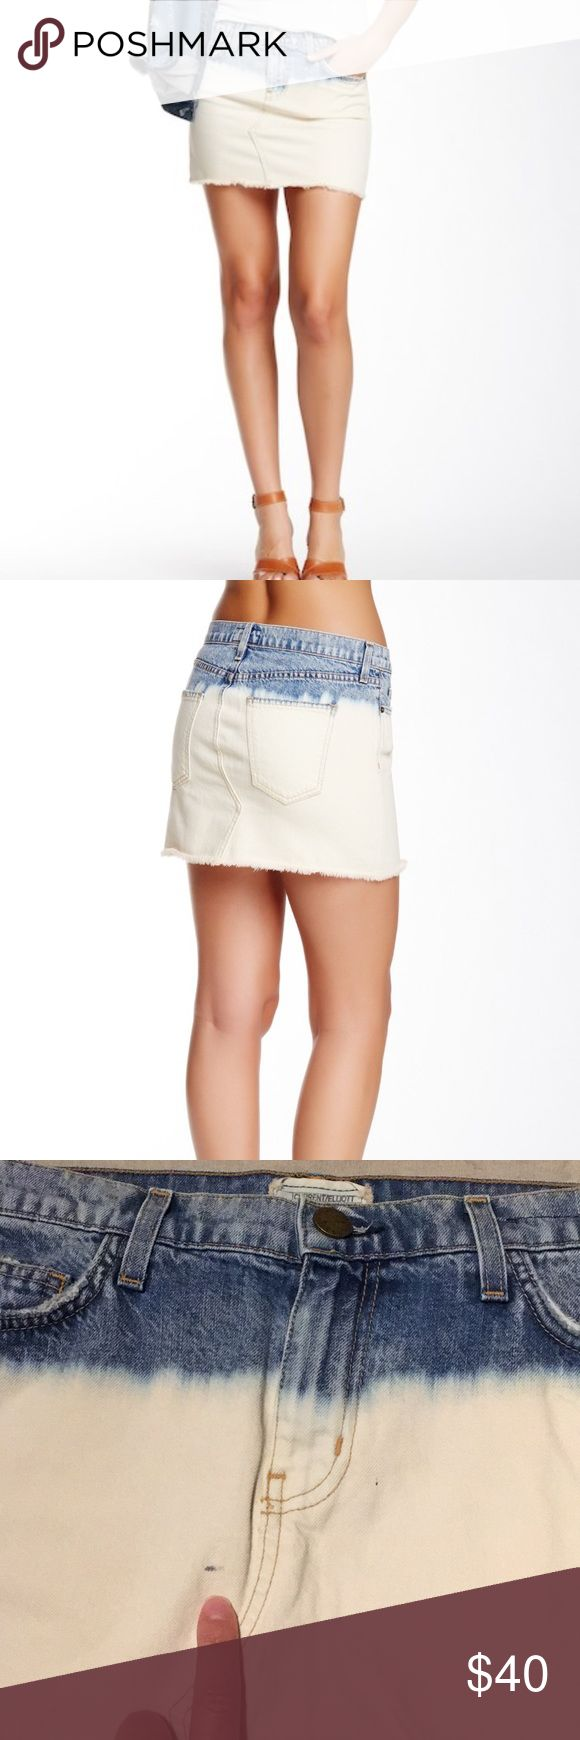 """Current Elliott """"The Cutoff Mini"""" jean skirt Current Elliott """"The Cutoff Mini"""" jean skirt in SEA SALT  Perfect for hot and hazy summers, the old-school denim starting this cutoff miniskirt is bleached down to its frayed hemline.  This is in good pre owned condition. (There is a small spot - see pic) besides that great, zipper is working.   Size tag was ripped out, so please reference measurements to ensure proper fit. I THINK it's a 30-31 (waist laying flat 17"""")  Zip fly + button closure 5…"""